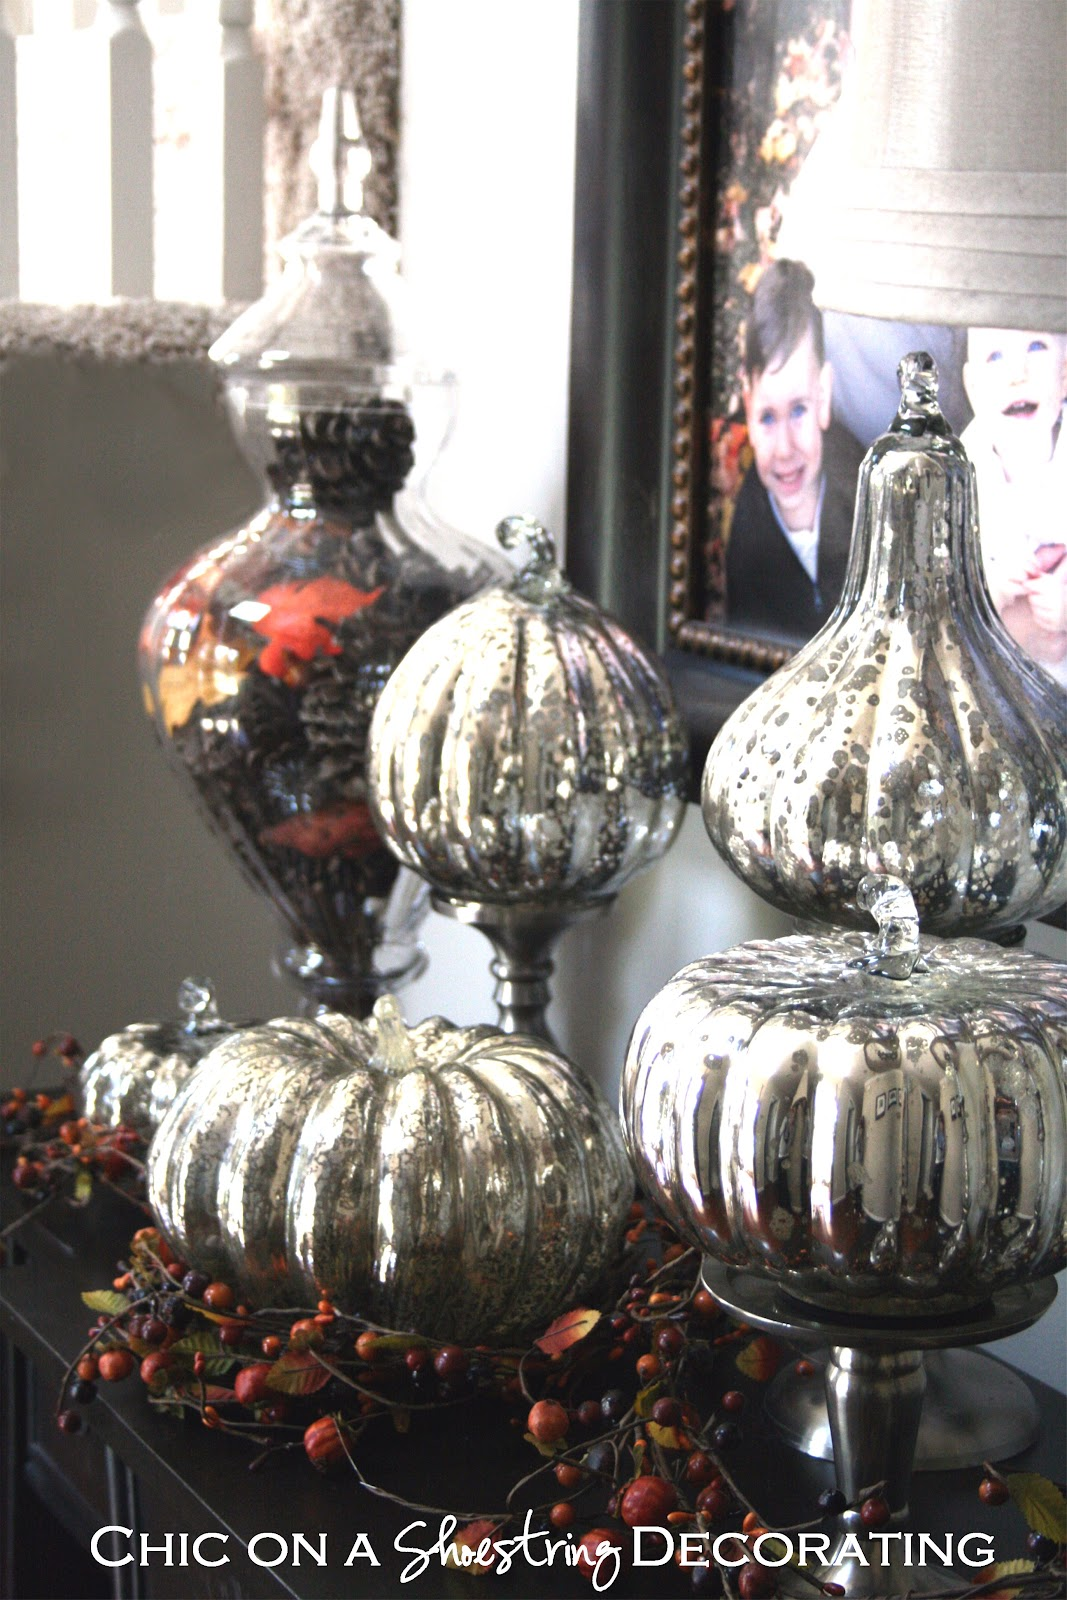 Chic on a Shoestring Decorating: Pumpkinlicious Mercury Glass